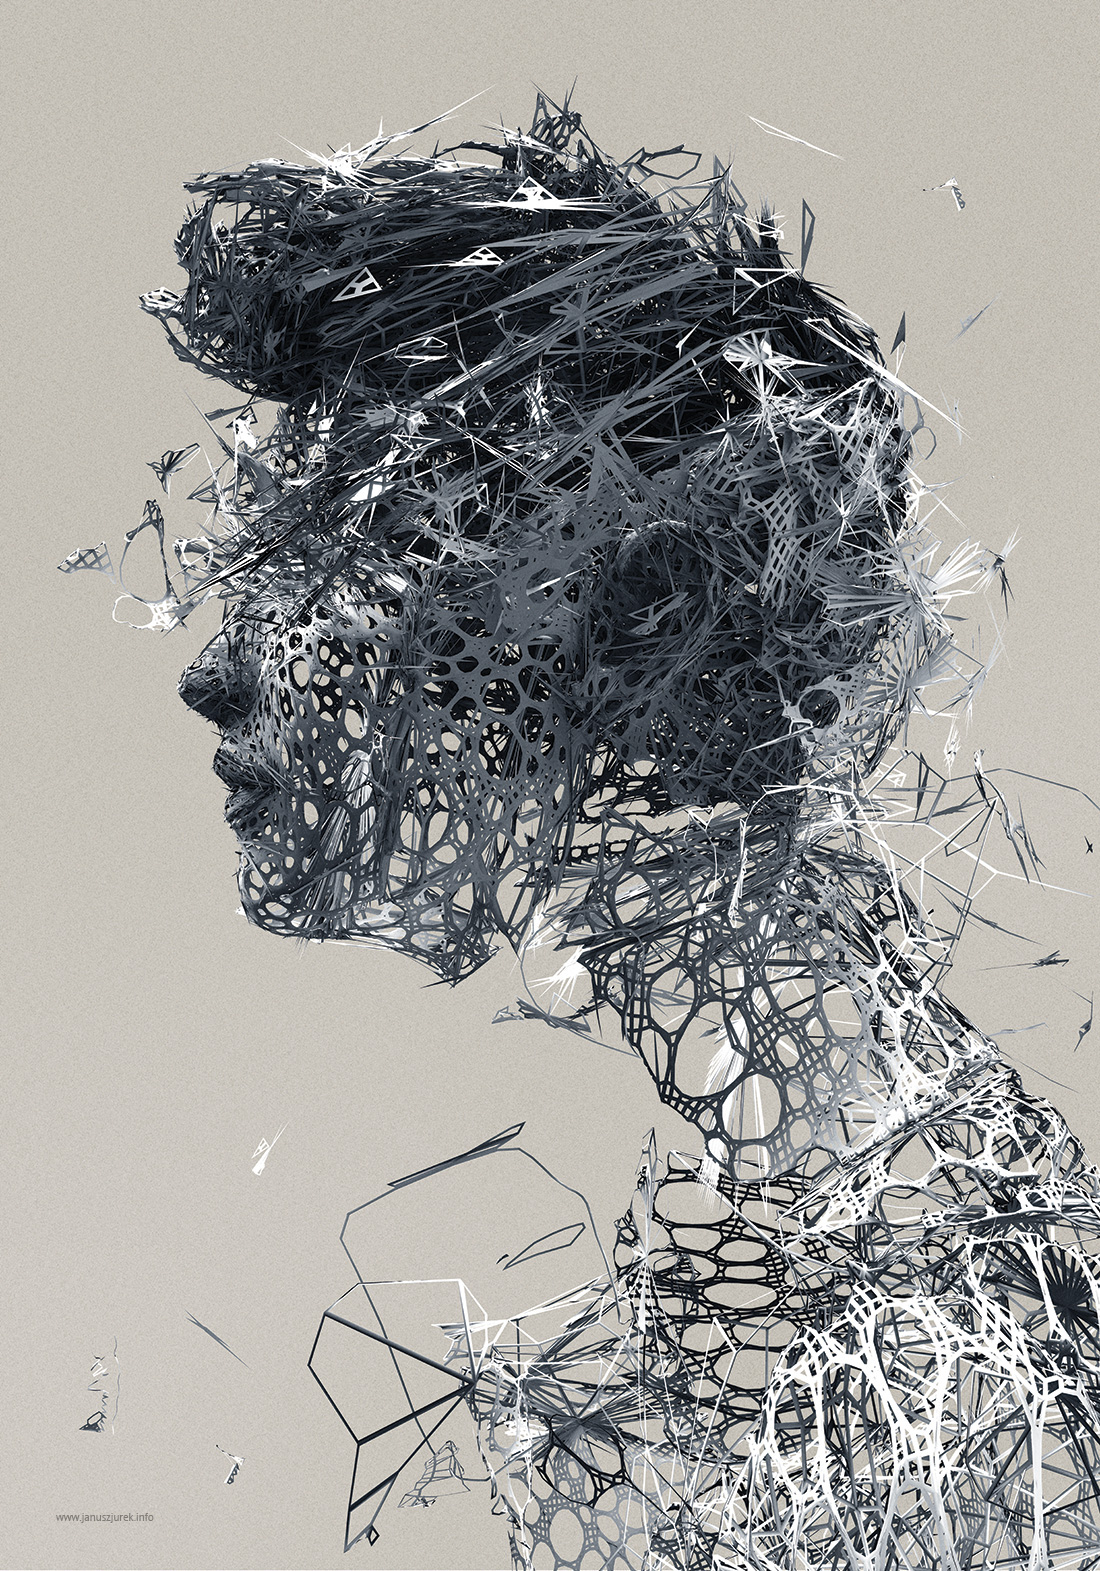 Creative Digital Artworks by Janusz Jurek #artpeople